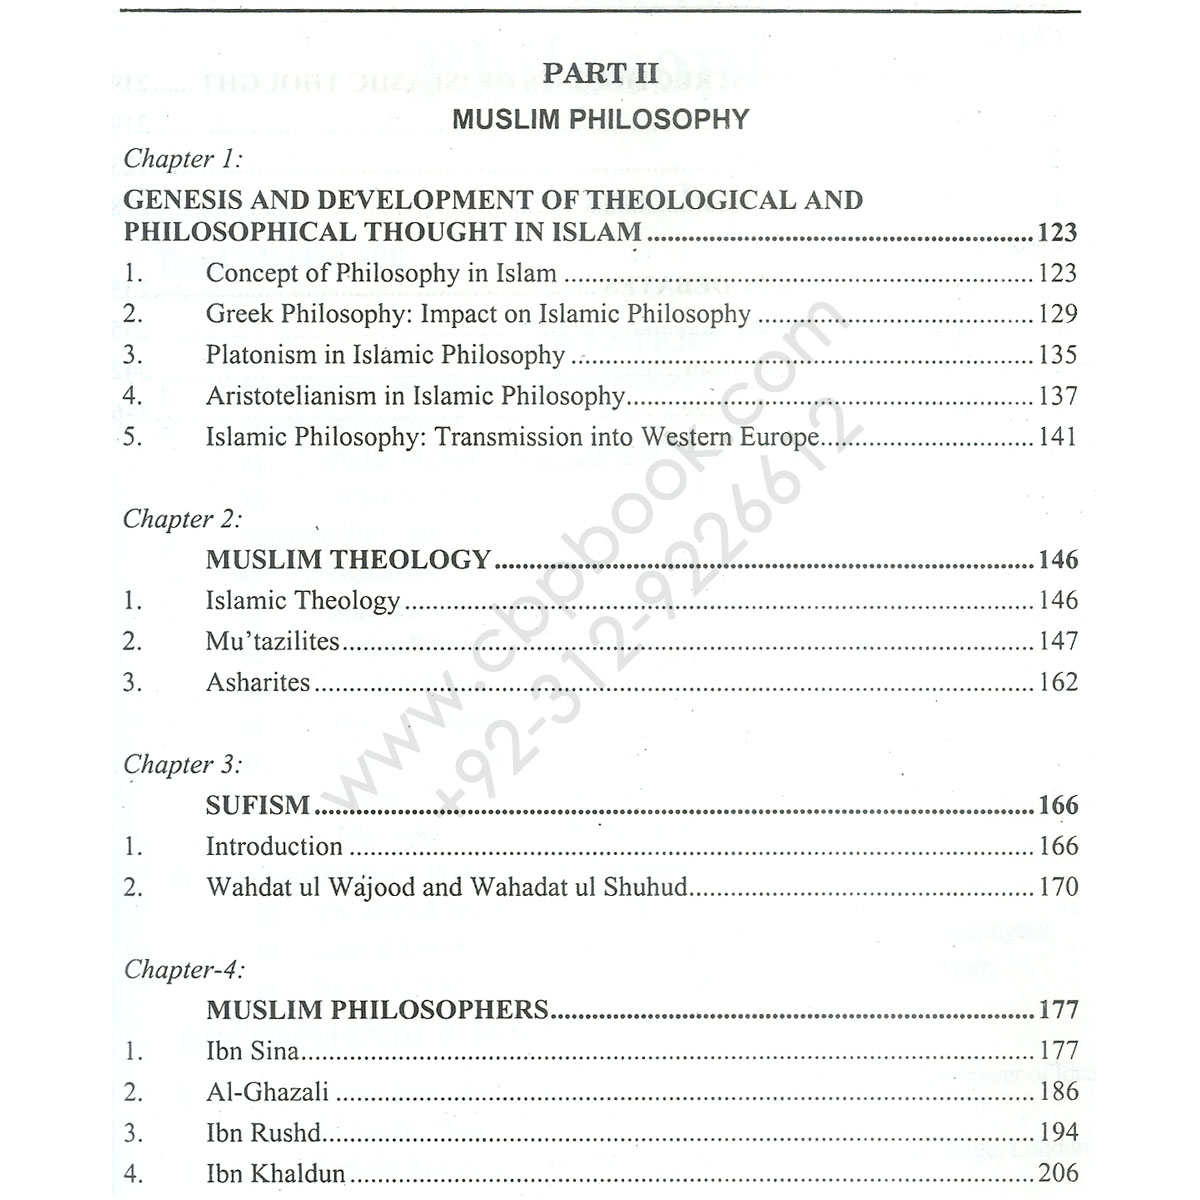 philosophy paper for css pms by m aslam chaudhry ah   philosophy paper 1 2 for css pms by m aslam chaudhry ah publisher 3